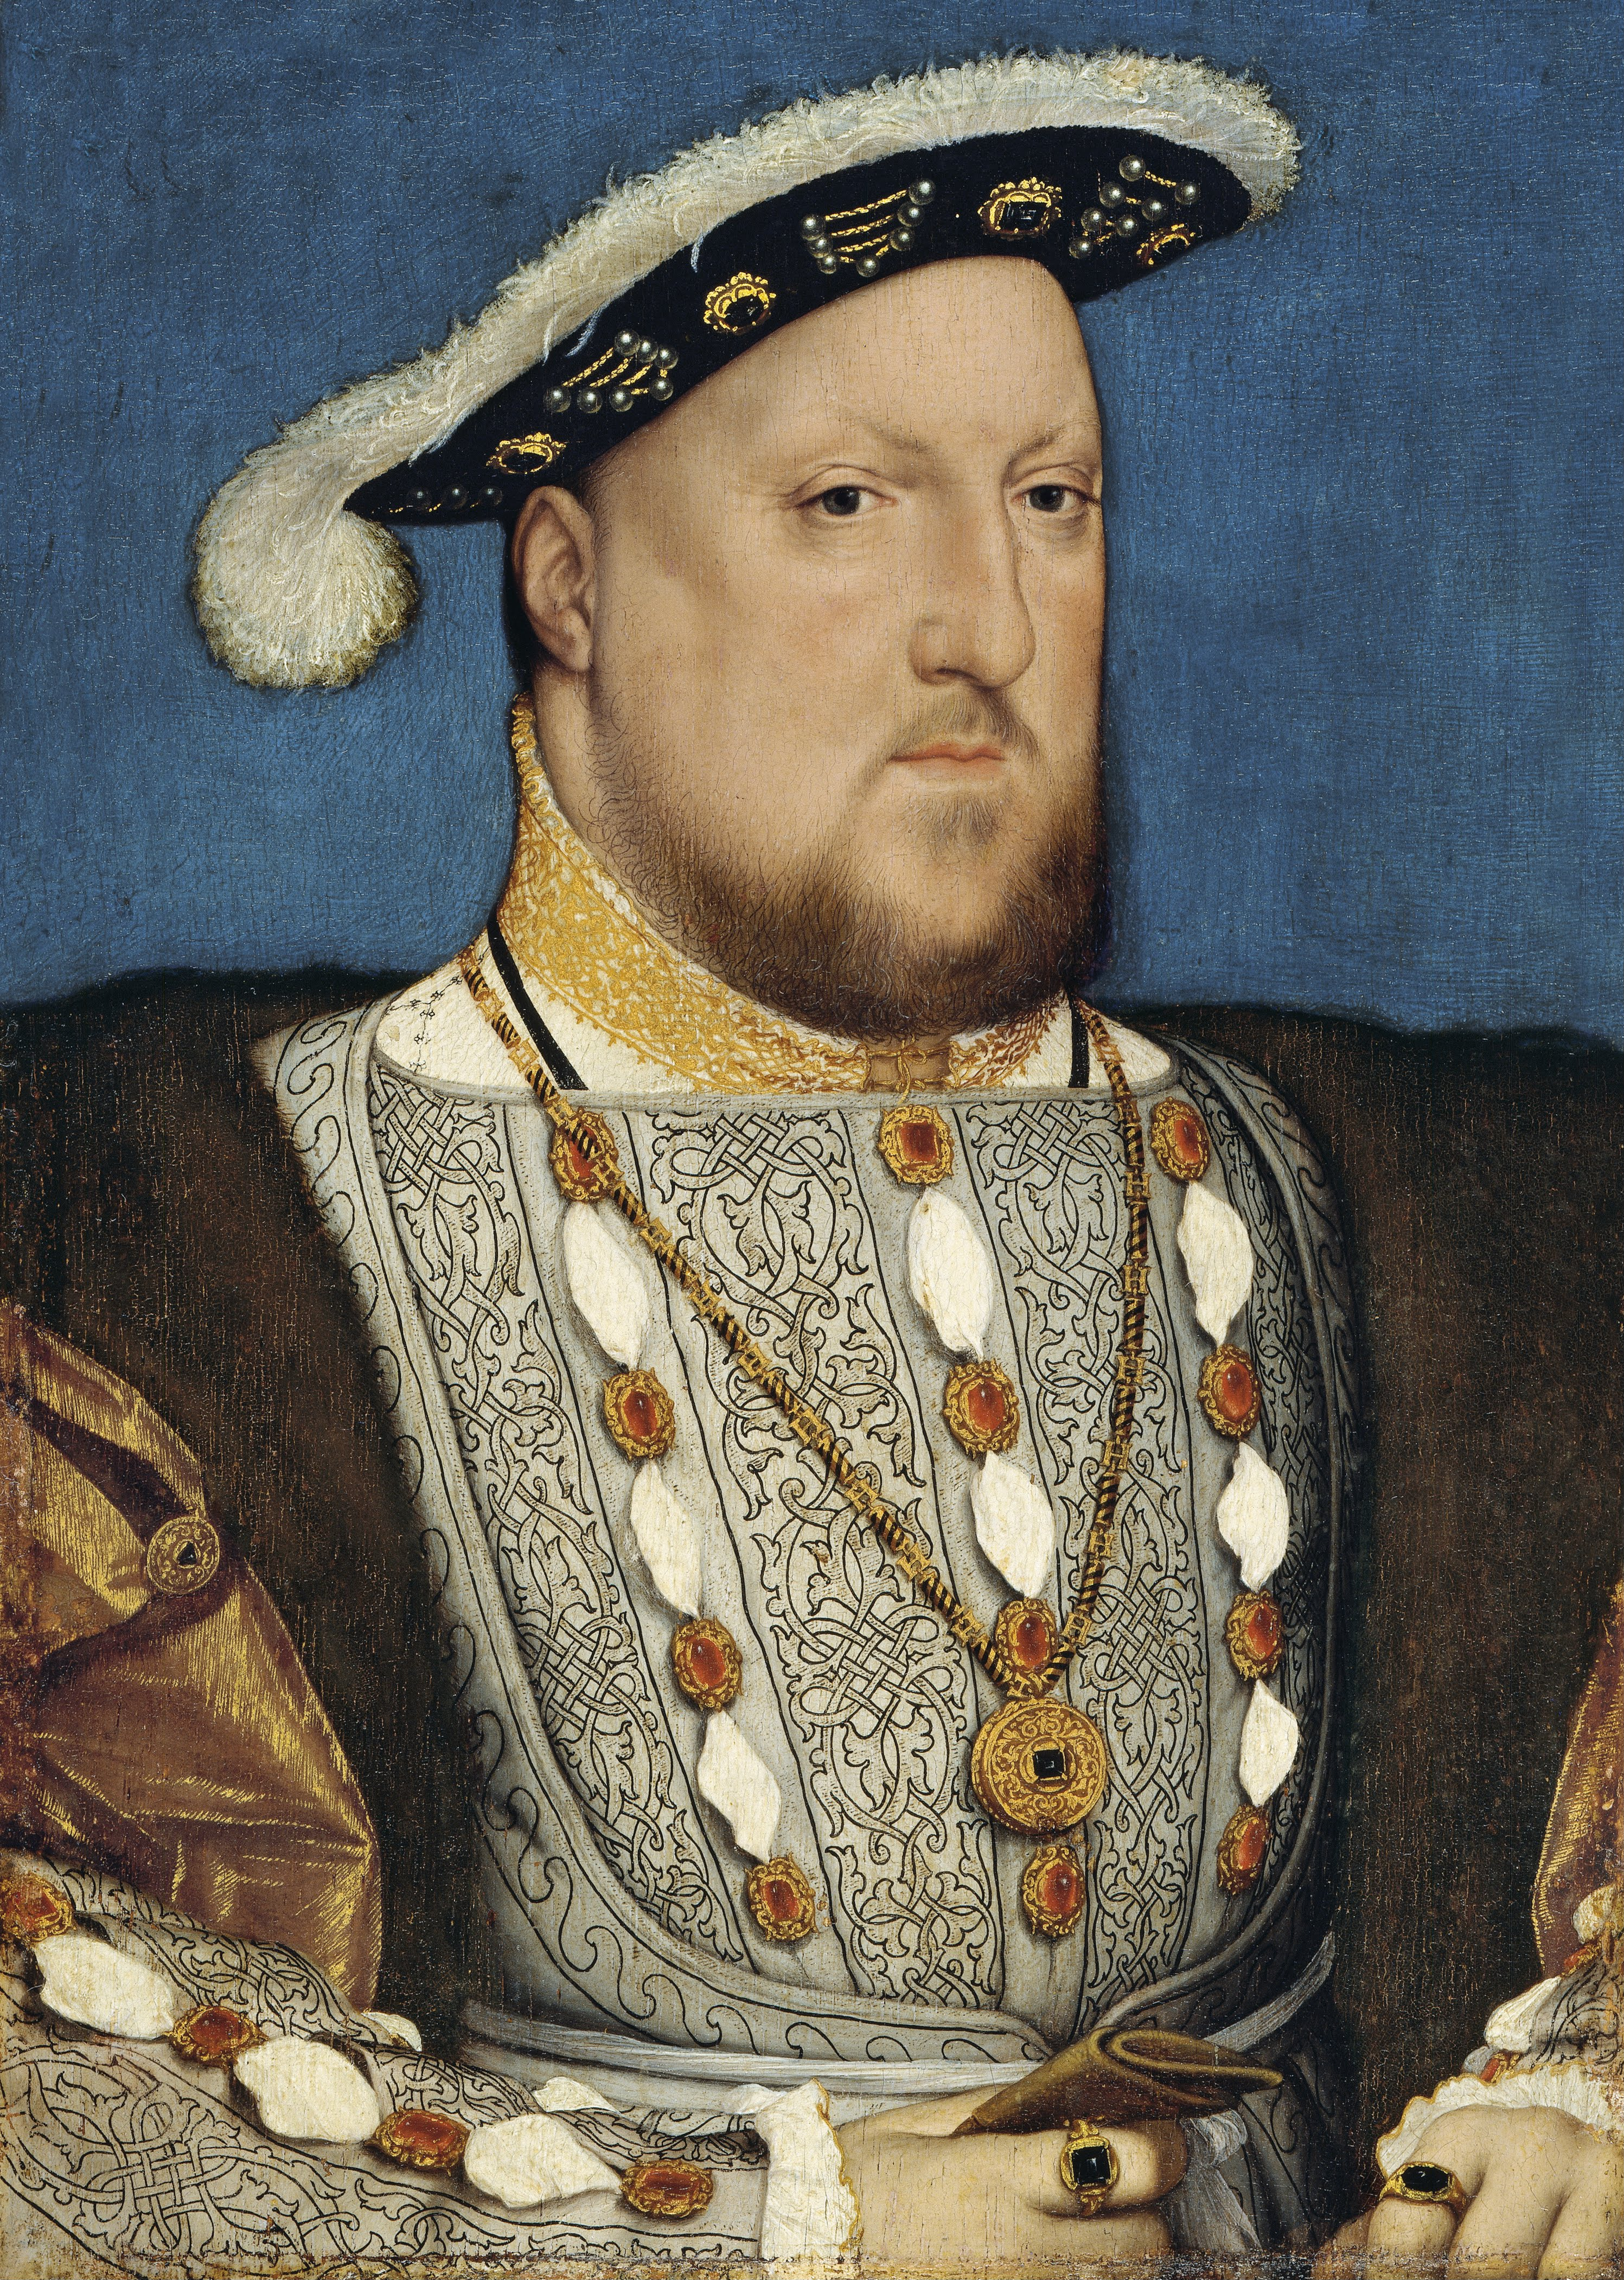 Hans_Holbein,_the_Younger,_Around_1497-1543_-_Portrait_of_Henry_VIII_of_England_-_Google_Art_Project (1)